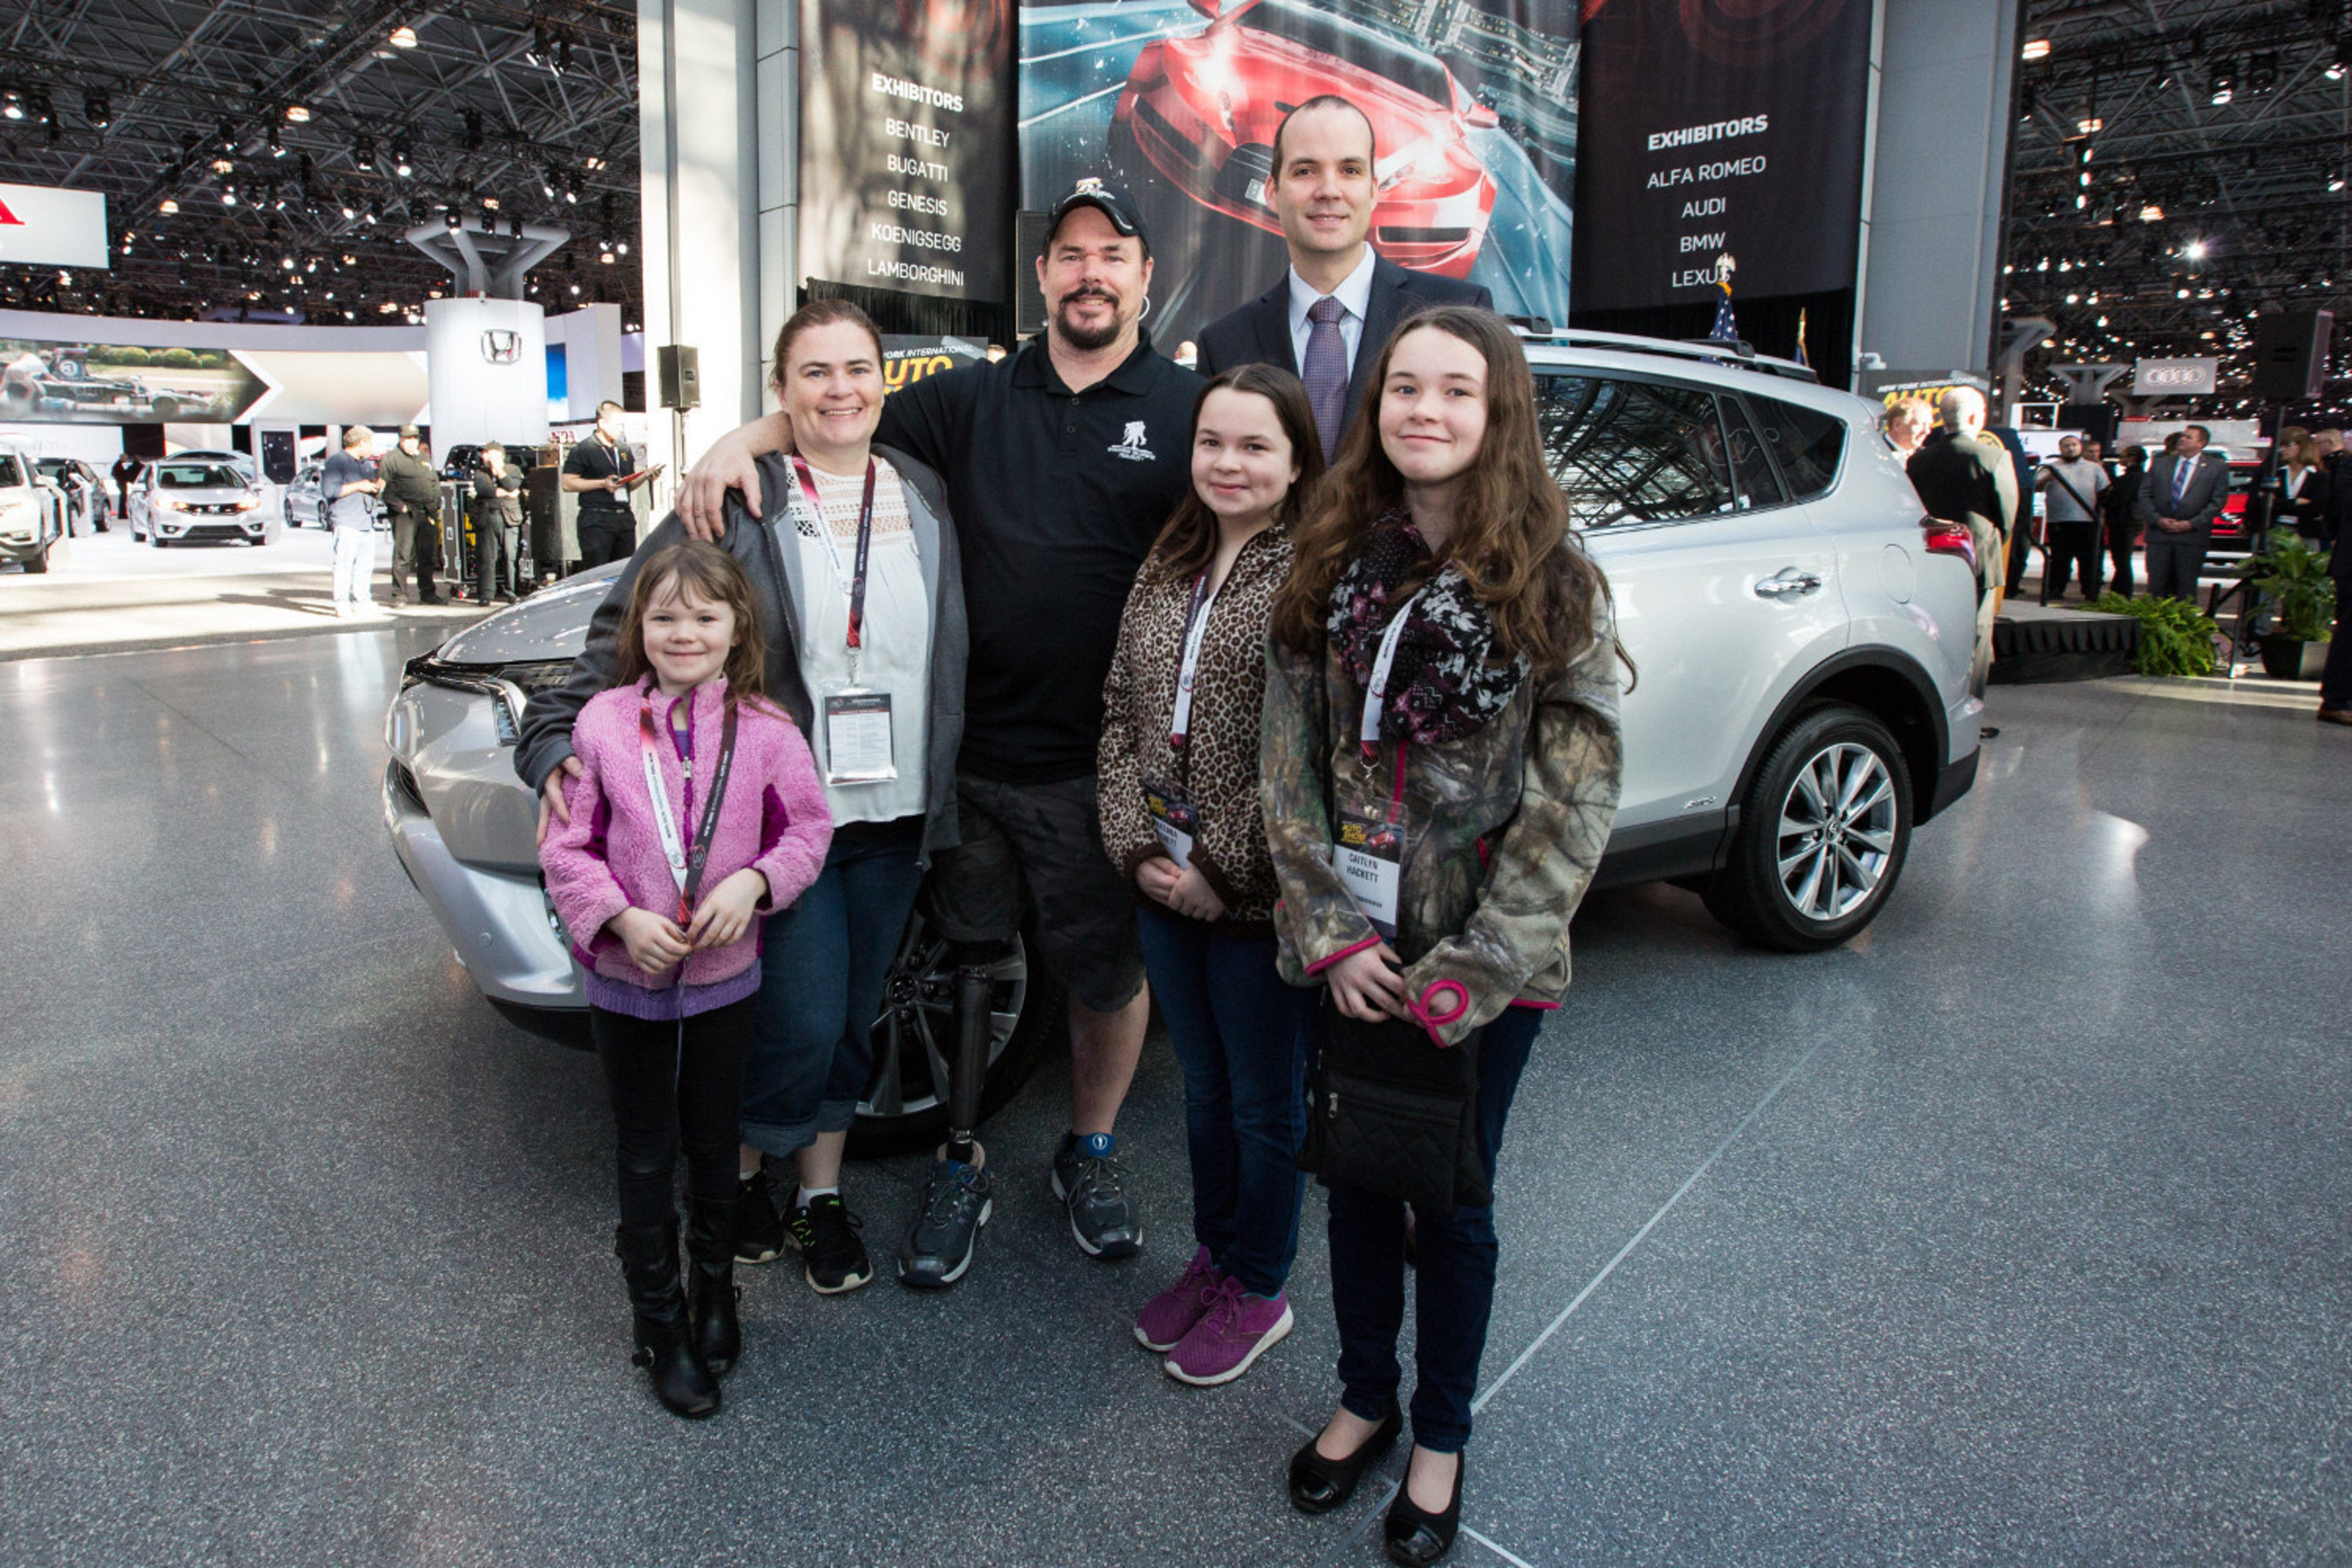 """Army Sergeant First Class Jeffrey Hackett (in hat), who lost his leg during the war in Afghanistan, poses in front of his new RAV4 Hybrid, donated by Toyota during the opening ceremony of the New York International Auto Show. Standing with Hackett and his family is Jason Keller, Toyota vehicle operations manager."""